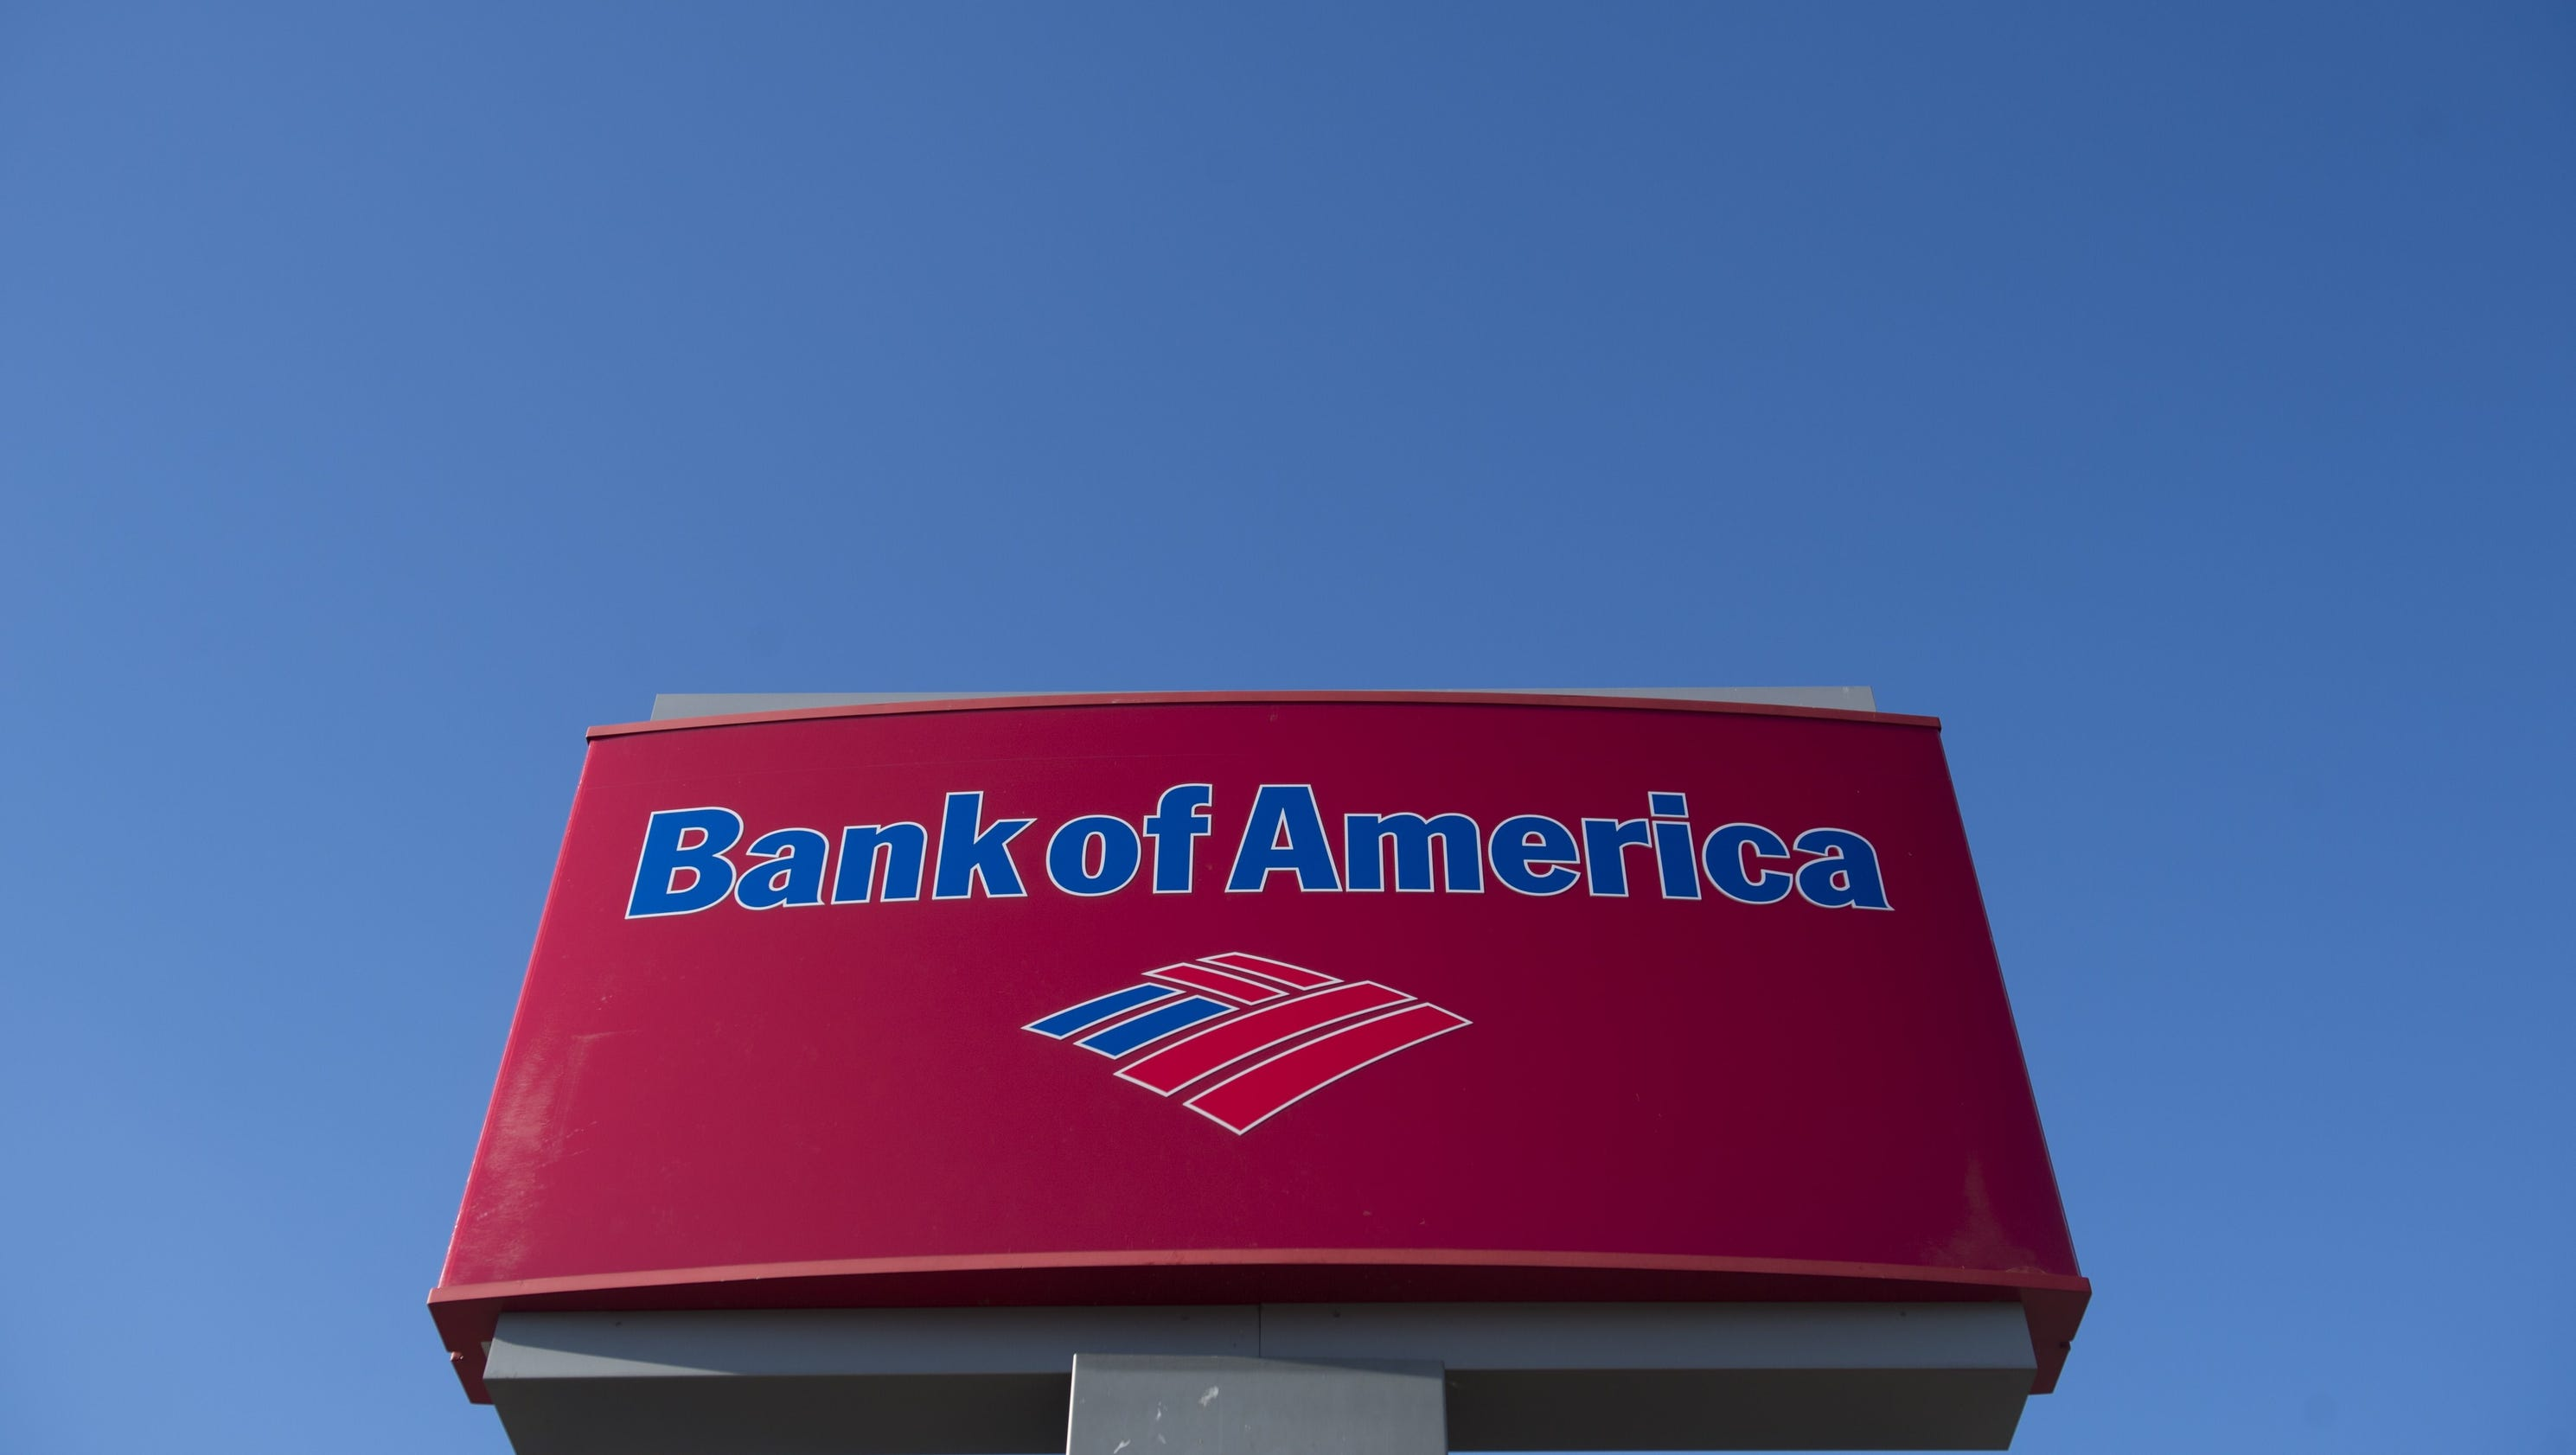 Bank Of America After earnings, ...